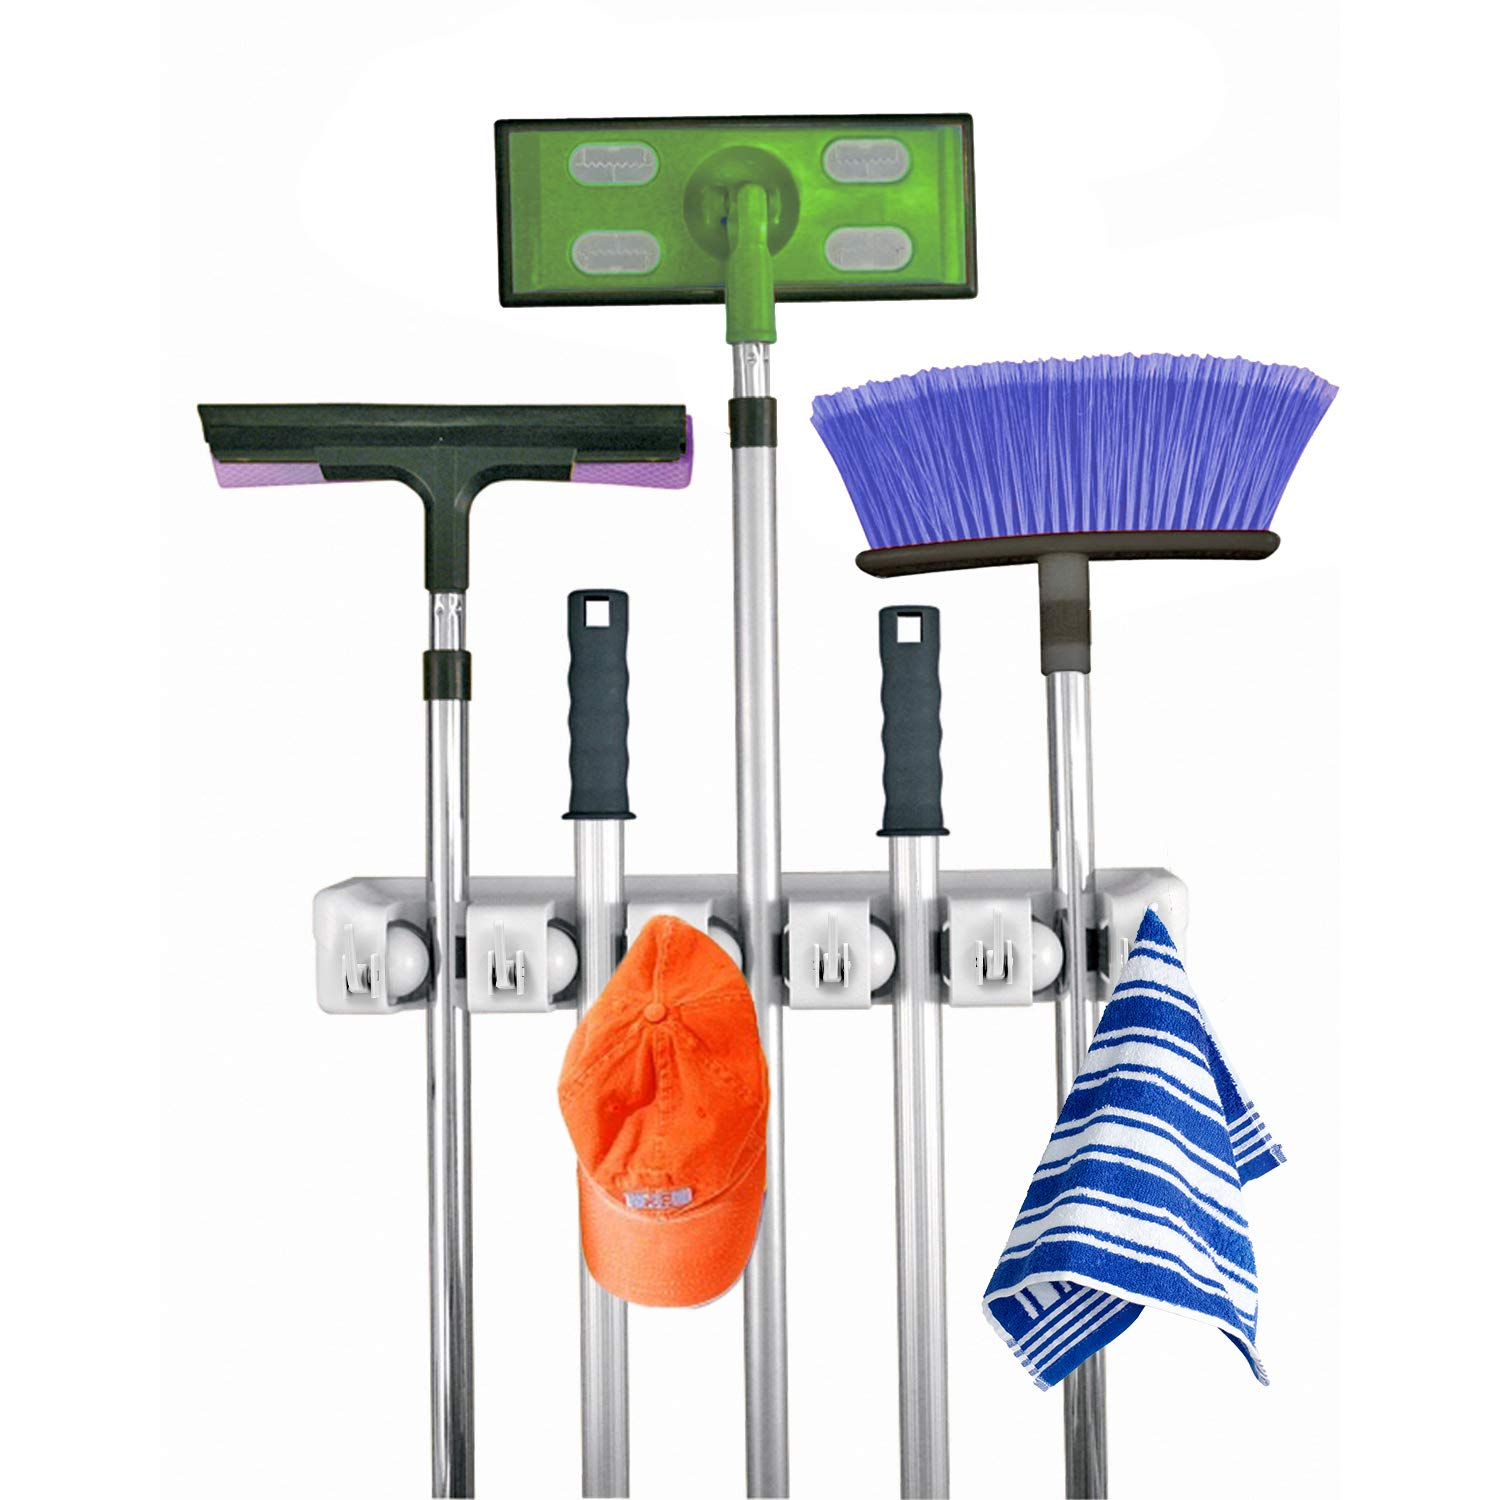 Home- It Mop and Broom Holder, 5 Position with 6 Hooks Garage Storage Holds up to 11 Tools, Storage Solutions for Broom Holders, Garage Storage Systems Broom Organizer for Garage Shelving Ideas by Home-it